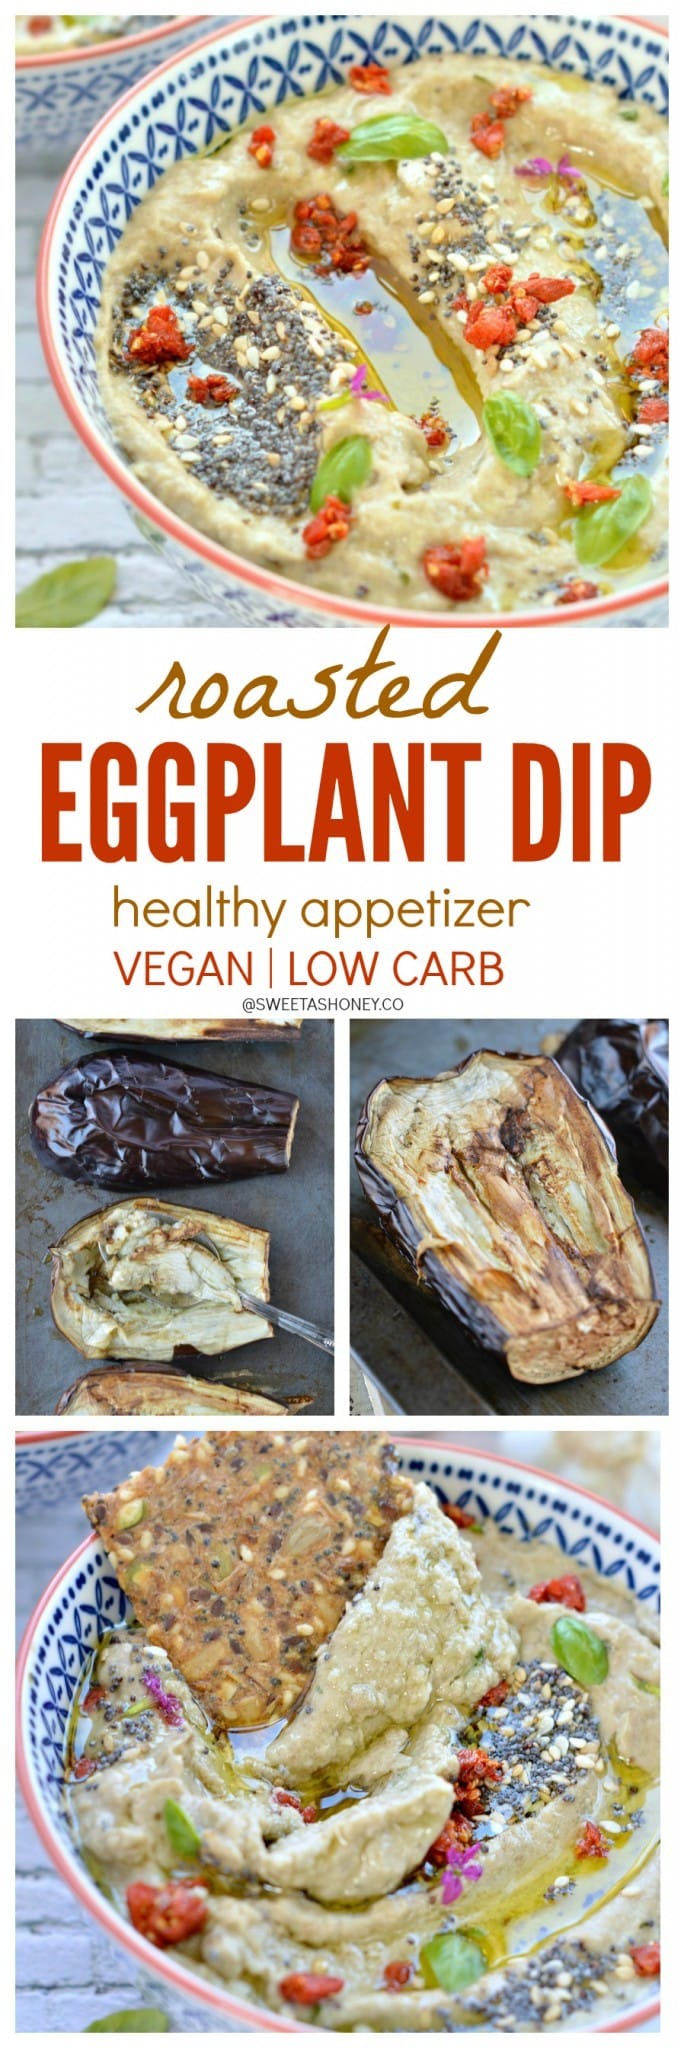 roasted eggplant dip vegan low carb